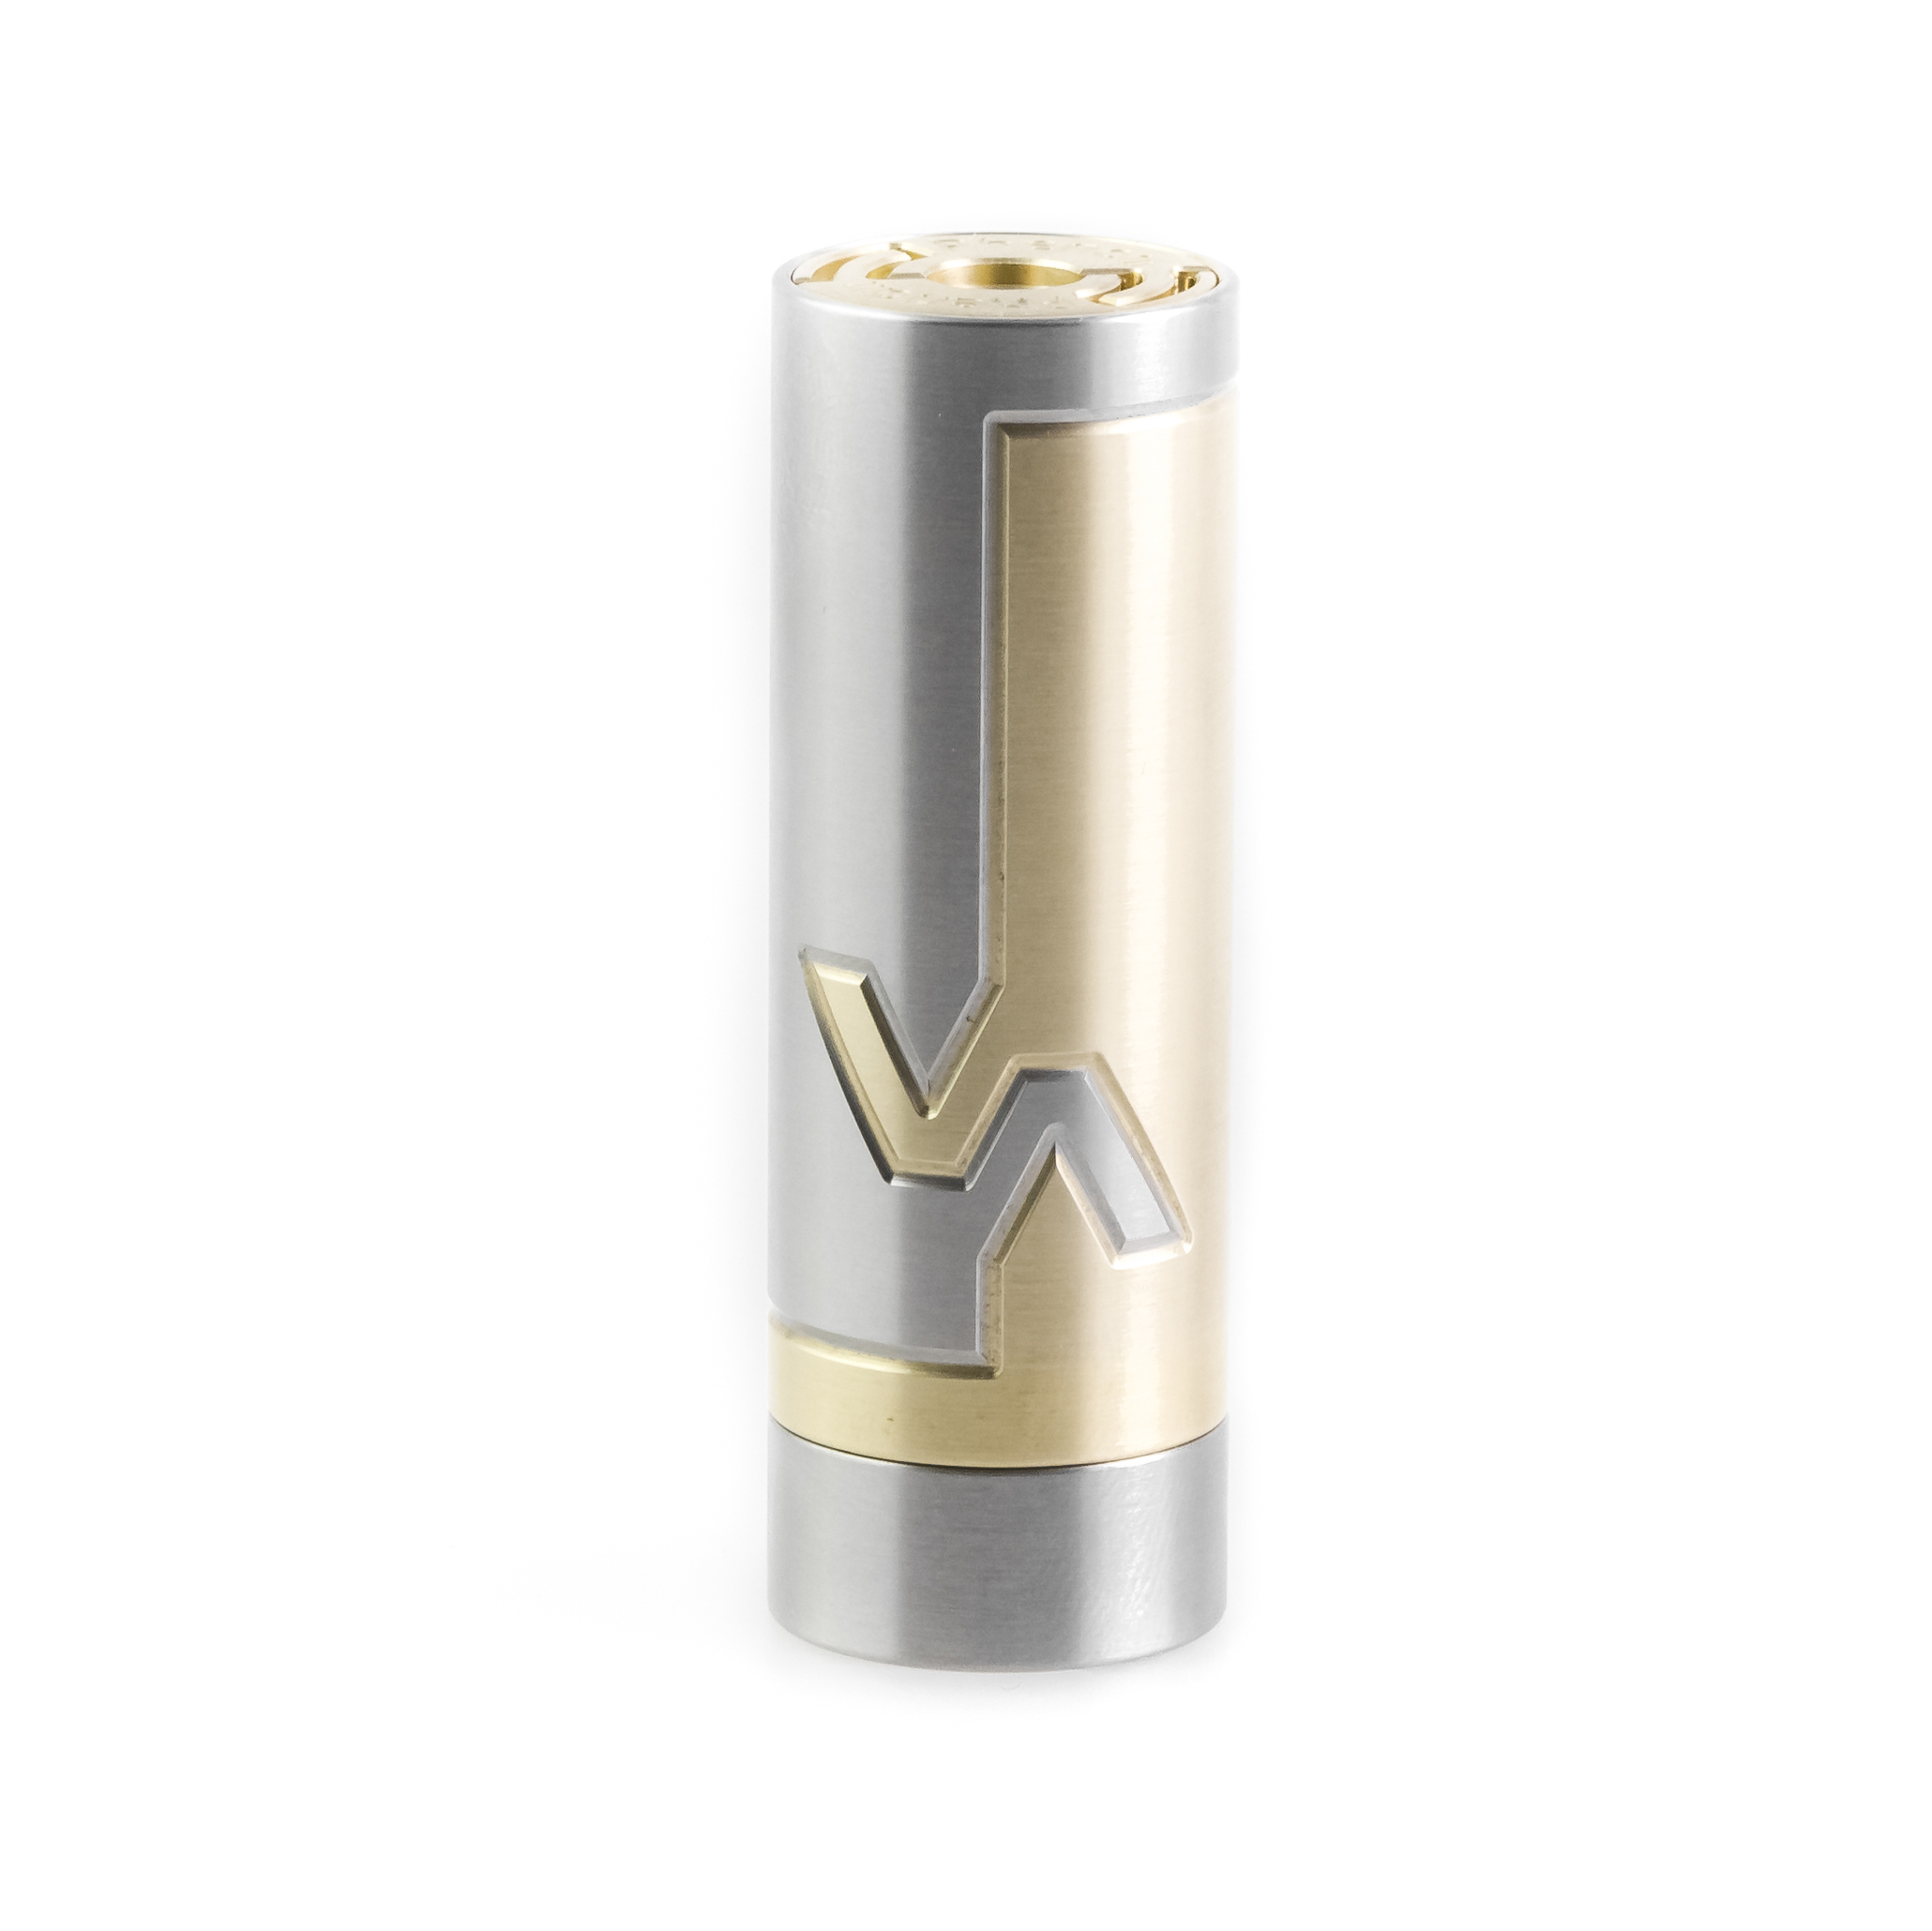 Vicious Ant Phenom Mini | Vaping Forum - Planet of the Vapes